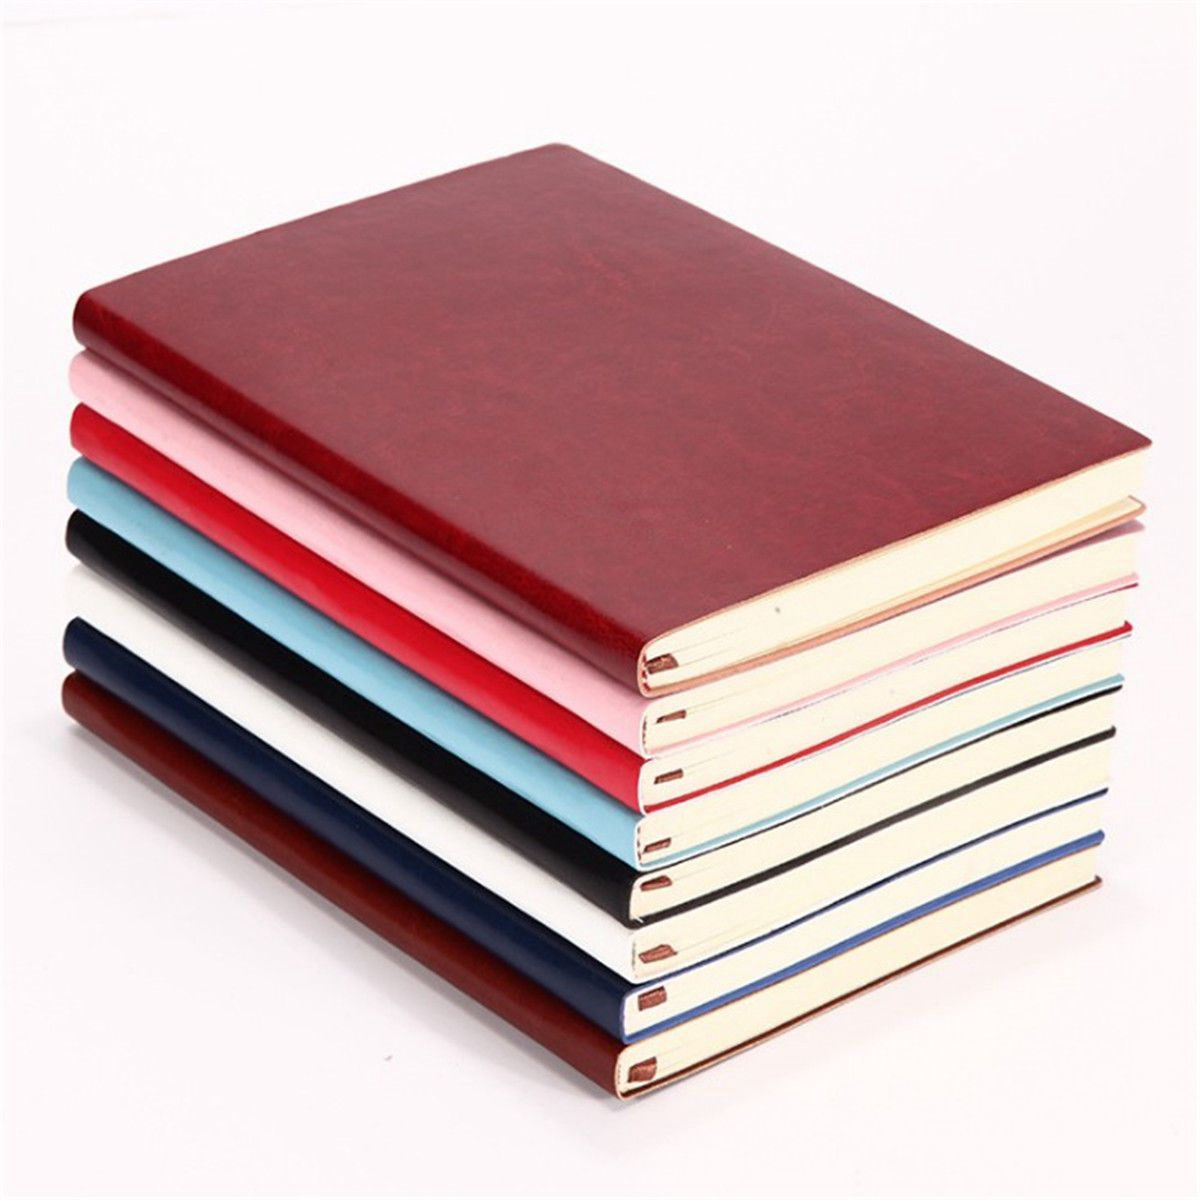 6 Color Random Soft Cover PU Leather Notebook Writing Journal 100 Page Lined Diary Book6 Color Random Soft Cover PU Leather Notebook Writing Journal 100 Page Lined Diary Book